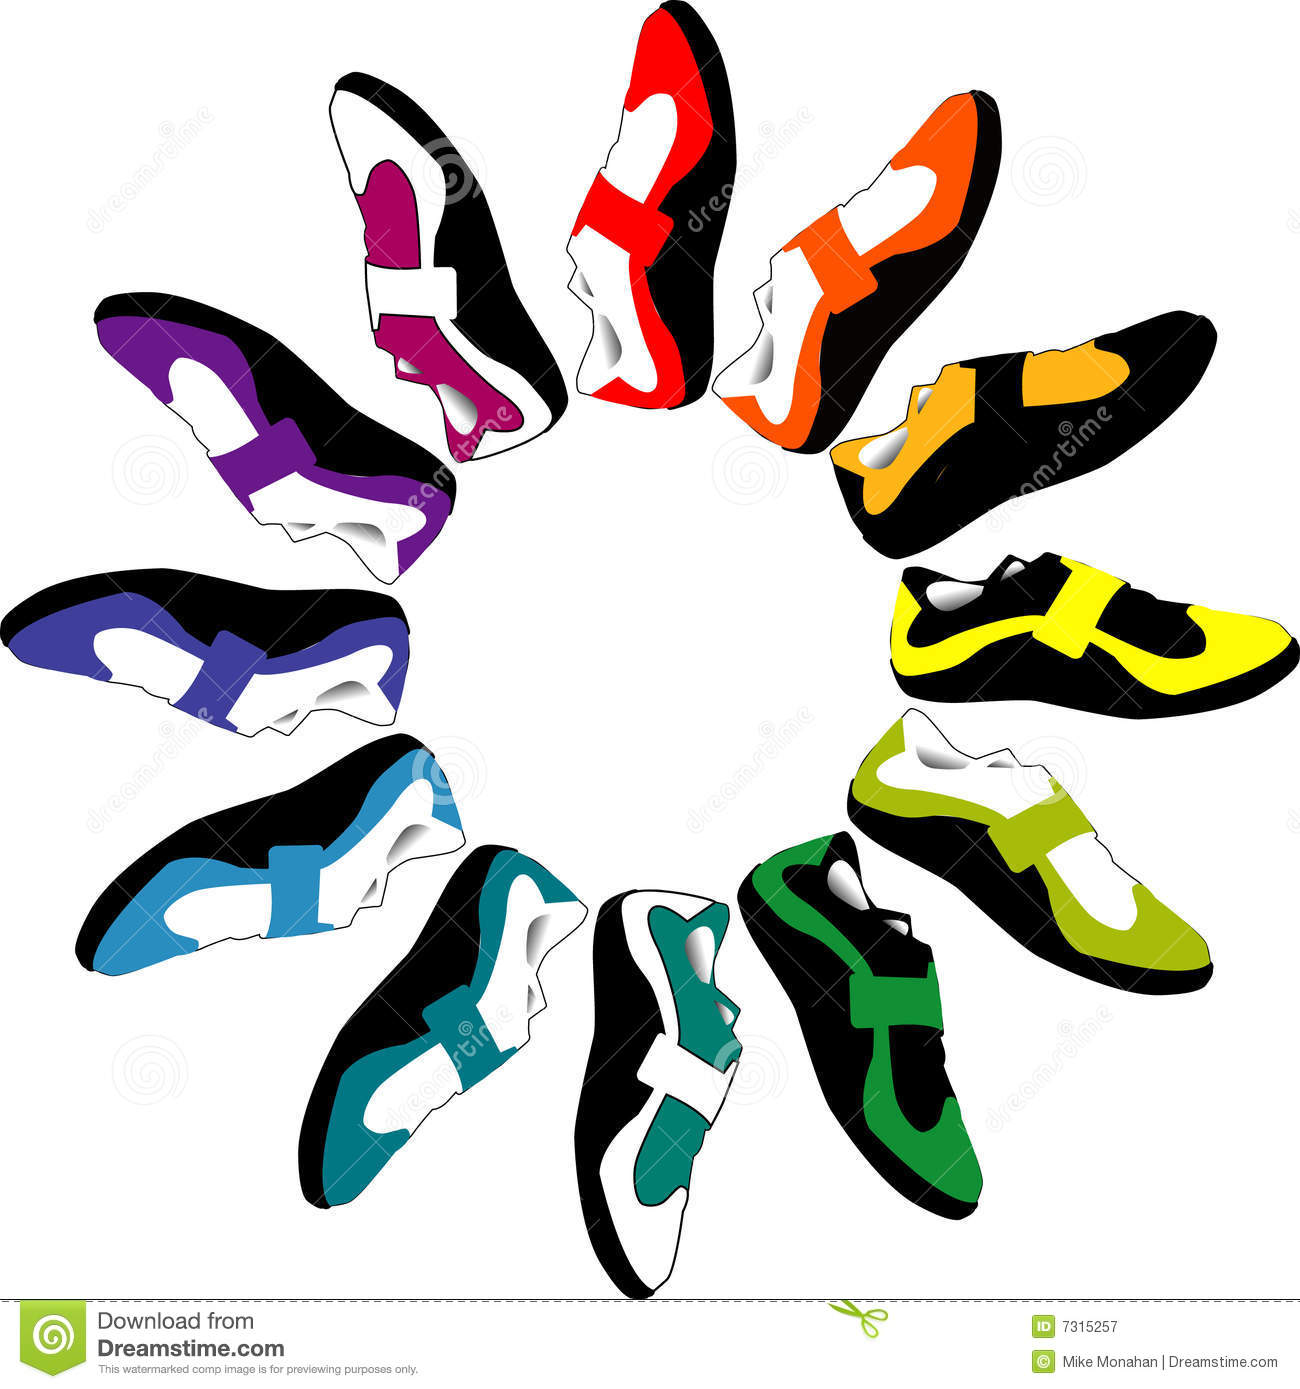 730feb0d59c9 An illustrated view of a circle of various colored shoes on a white  background.